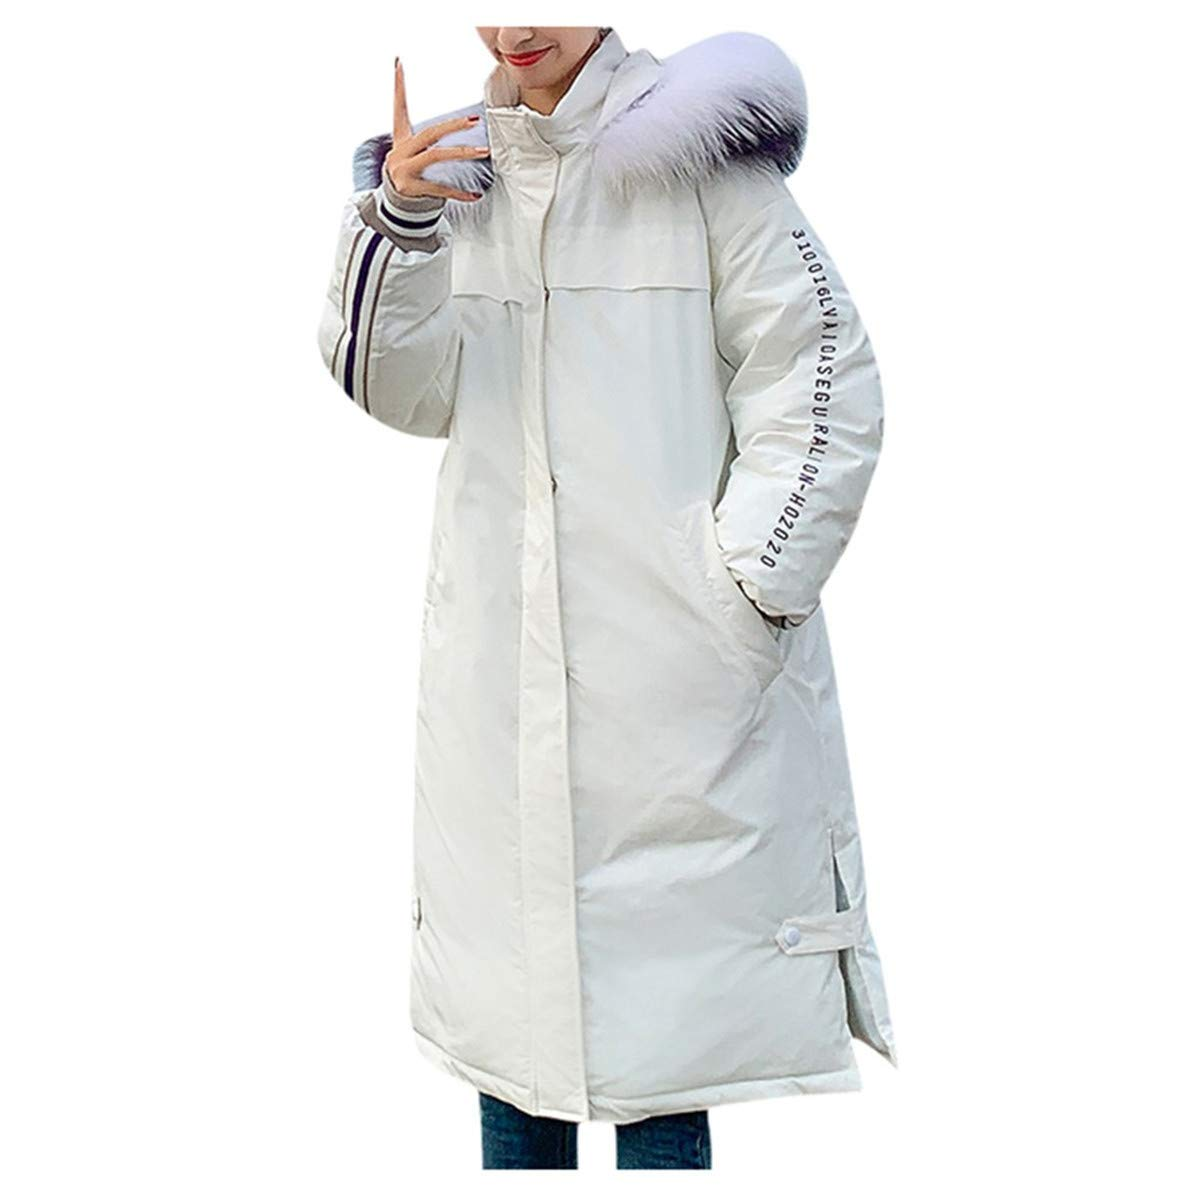 Thenxin Women Teen Girl Winter Hooded Parka Puffer Coats Oversized Jacket with Letter Embroidery(White,M) by Thenxin